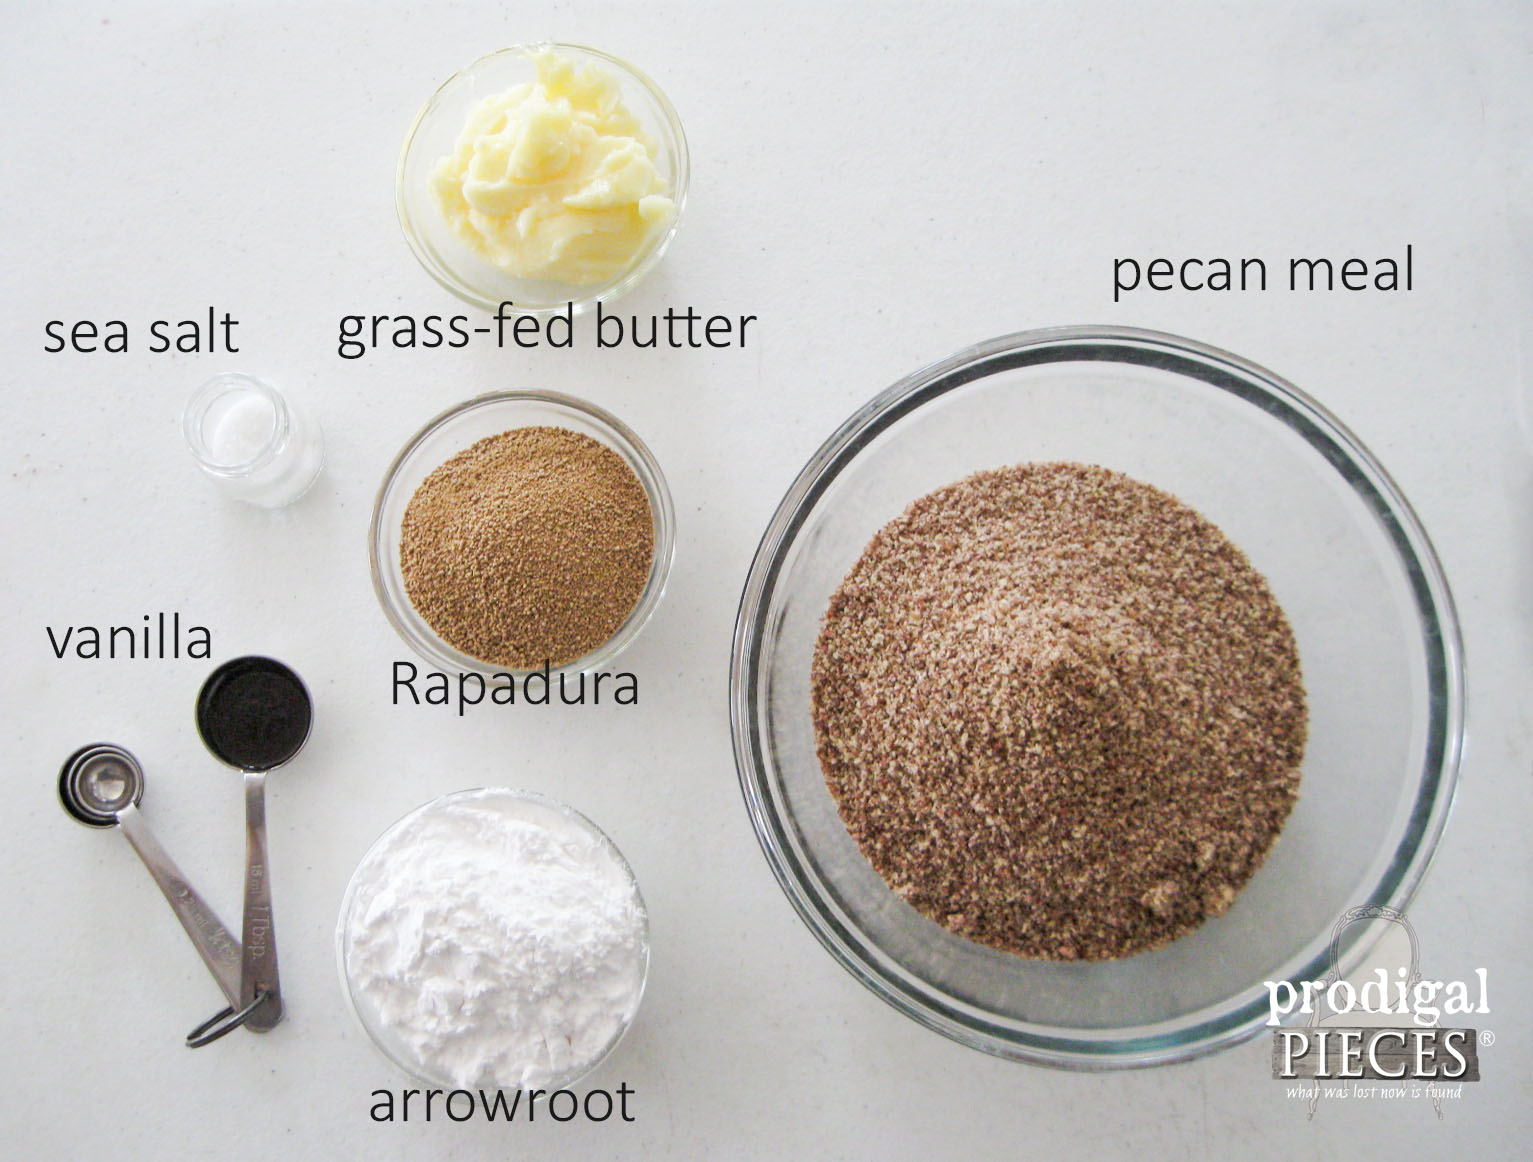 Ingredients for Making Roasted Stone Fruit Dessert by Prodigal Pieces | www.prodigalpieces.com